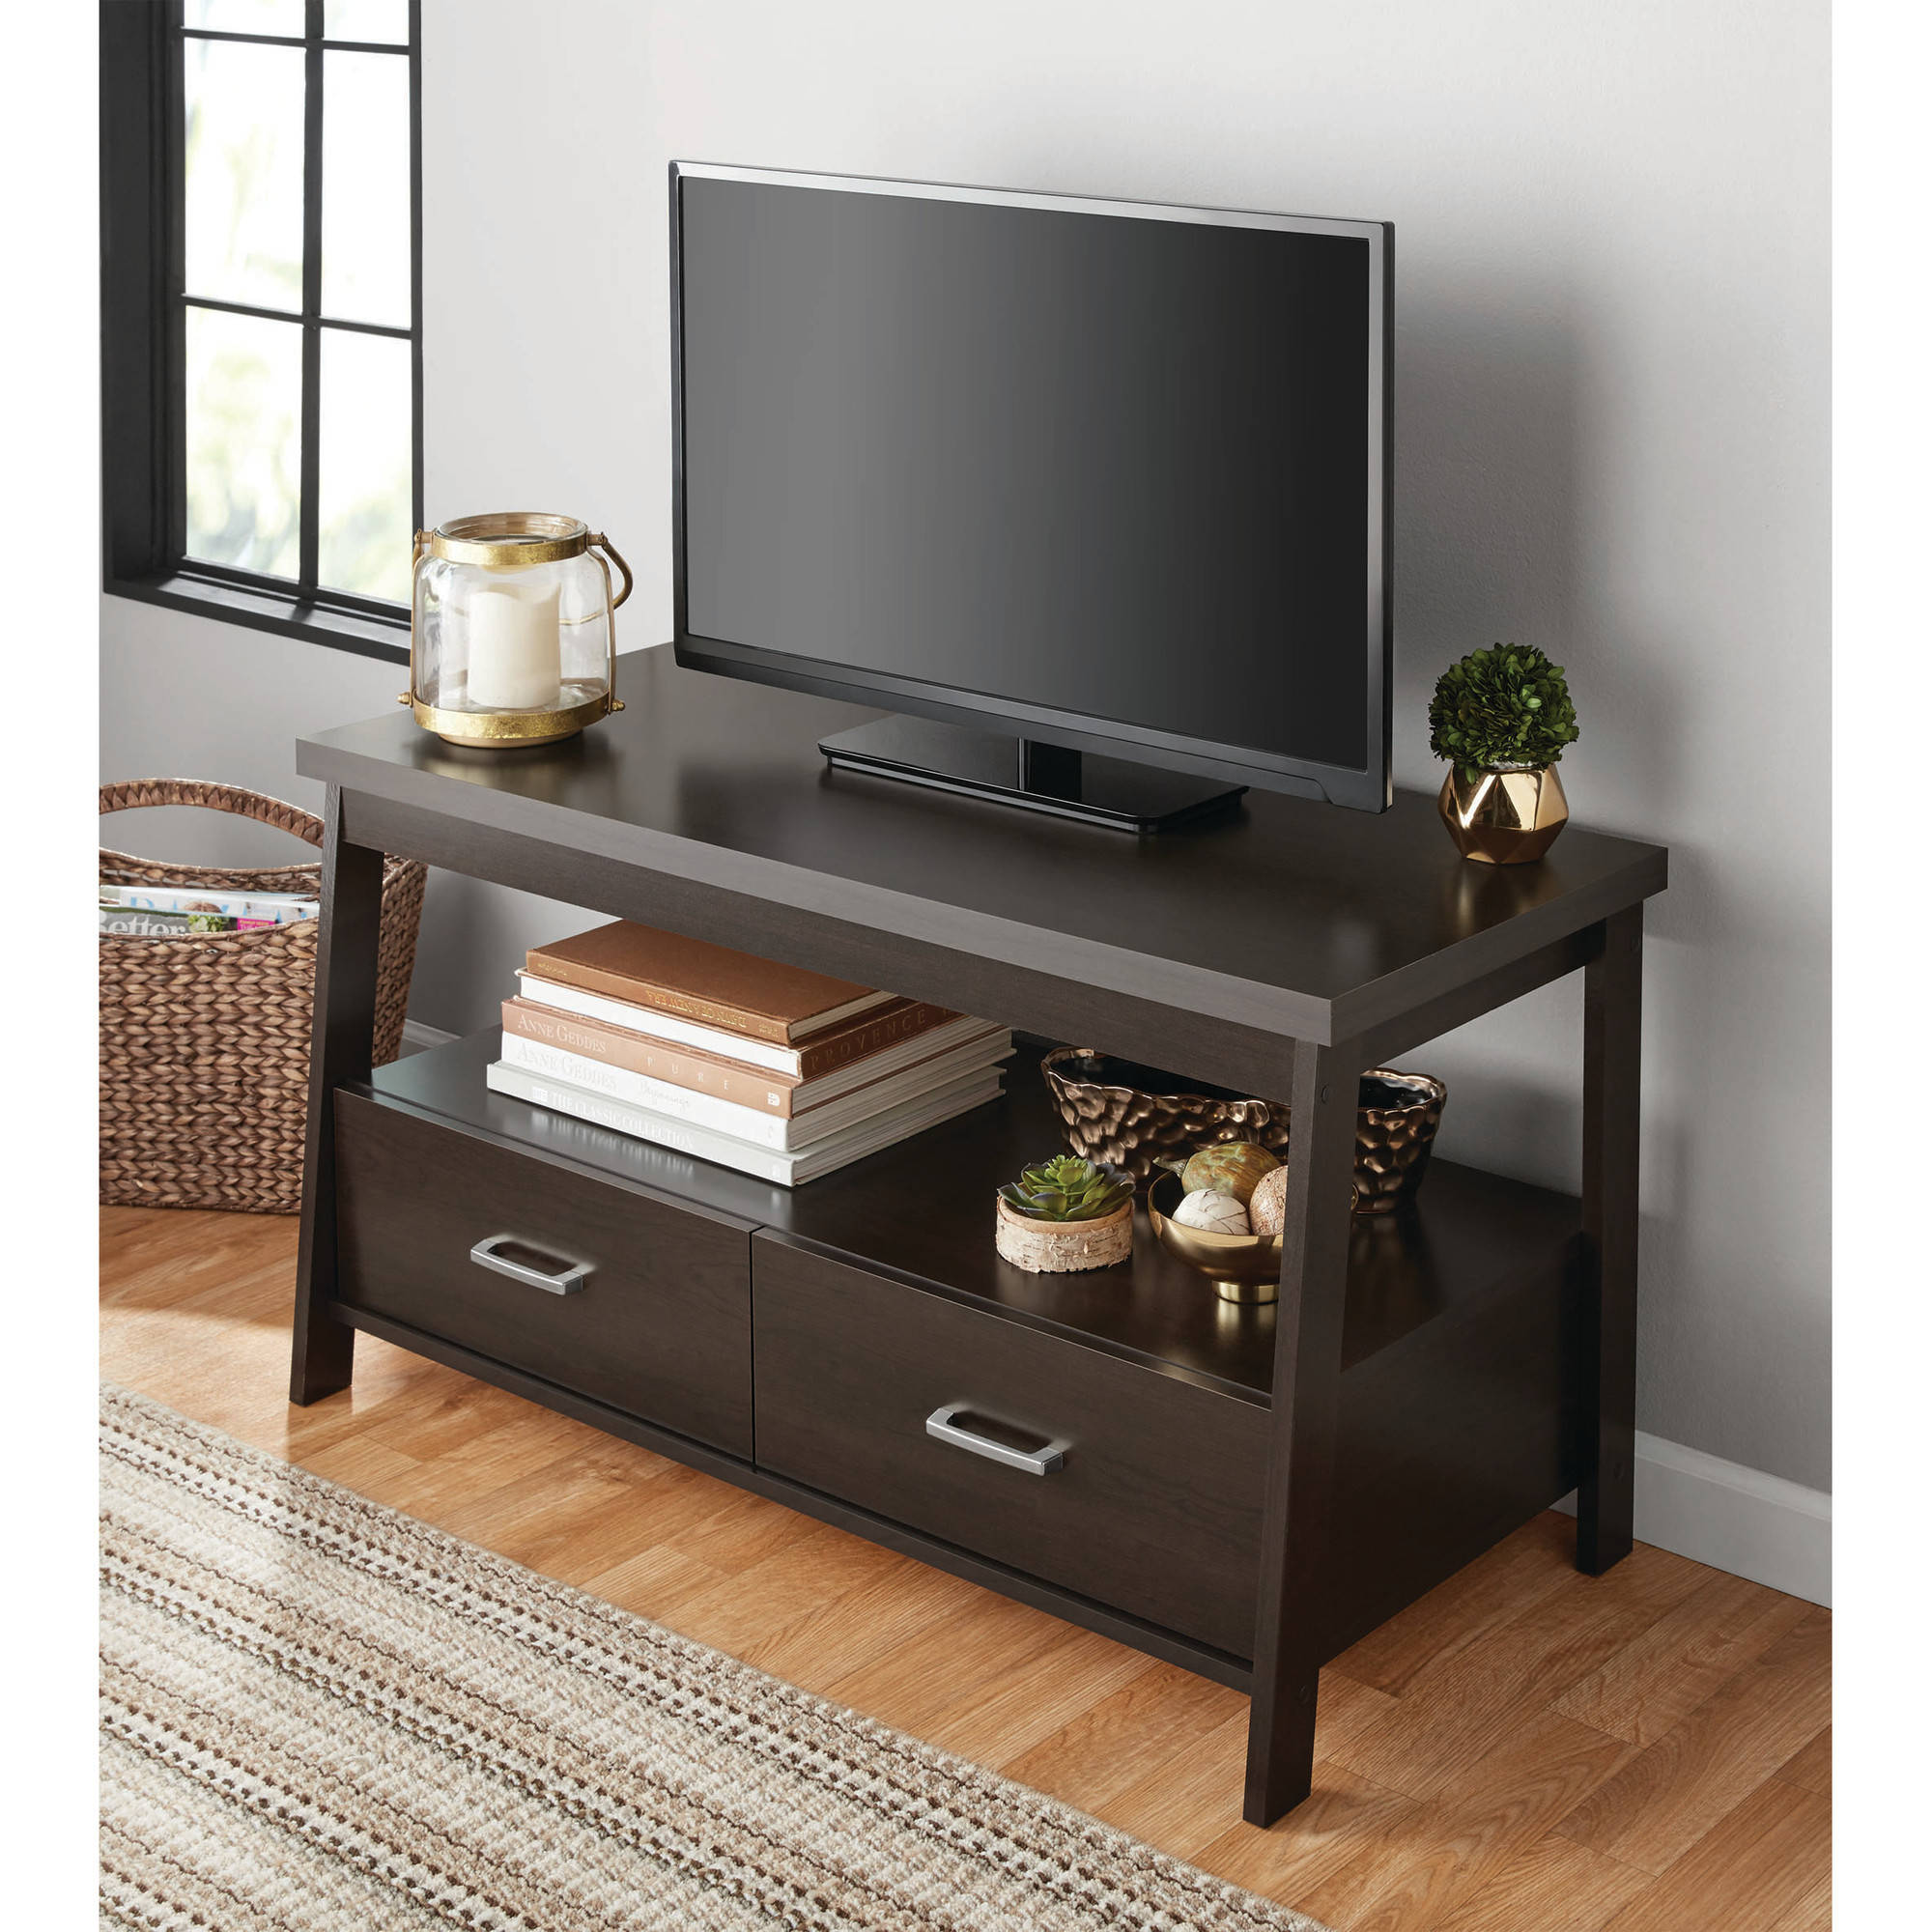 Mainstays Logan Tv Stand For Tvs Up To 47 Espresso Finish Walmart Com Walmart Com